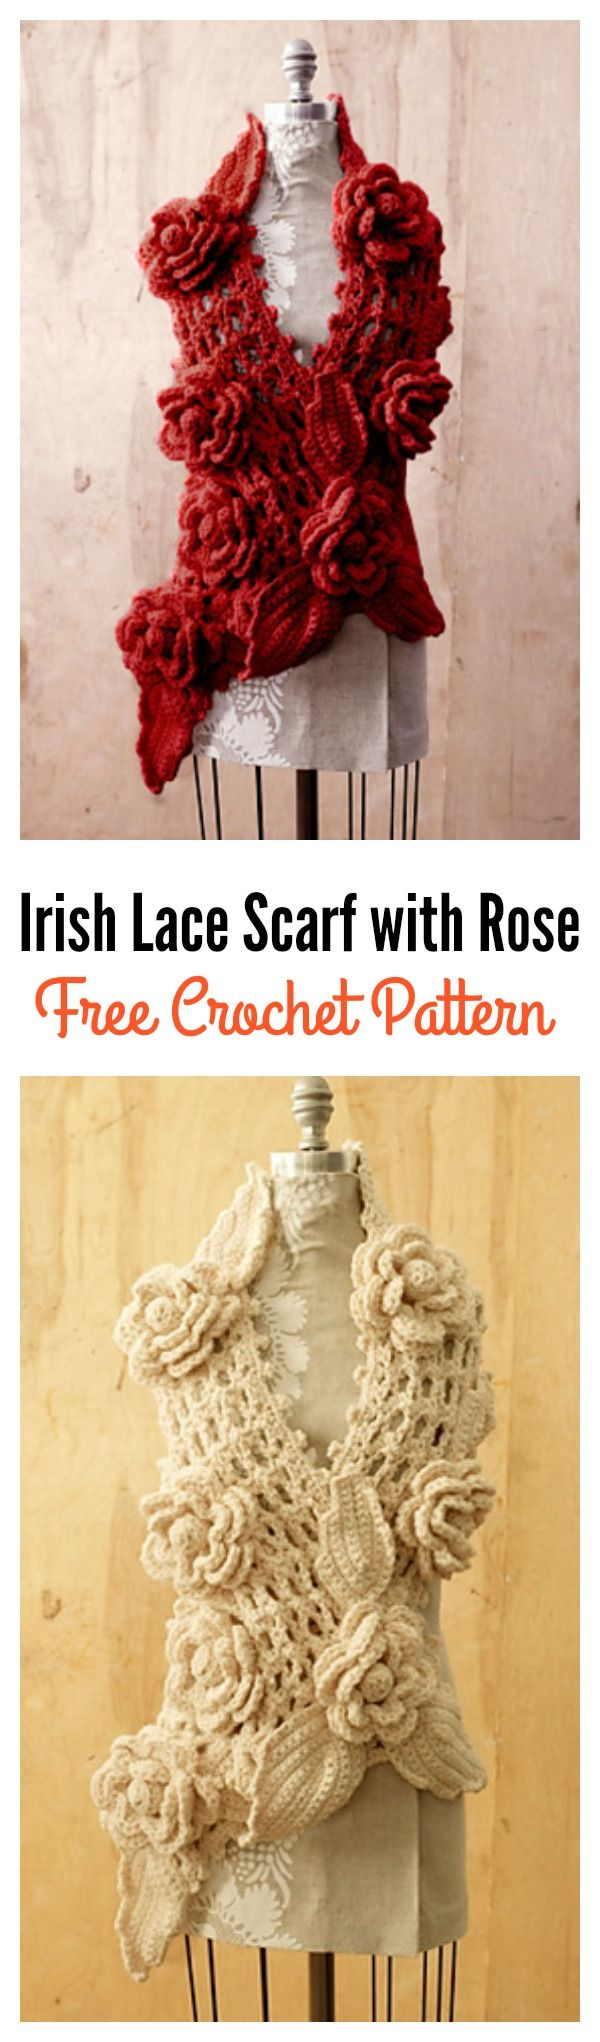 Crochet Irish Lace Scarf with Rose Free Pattern